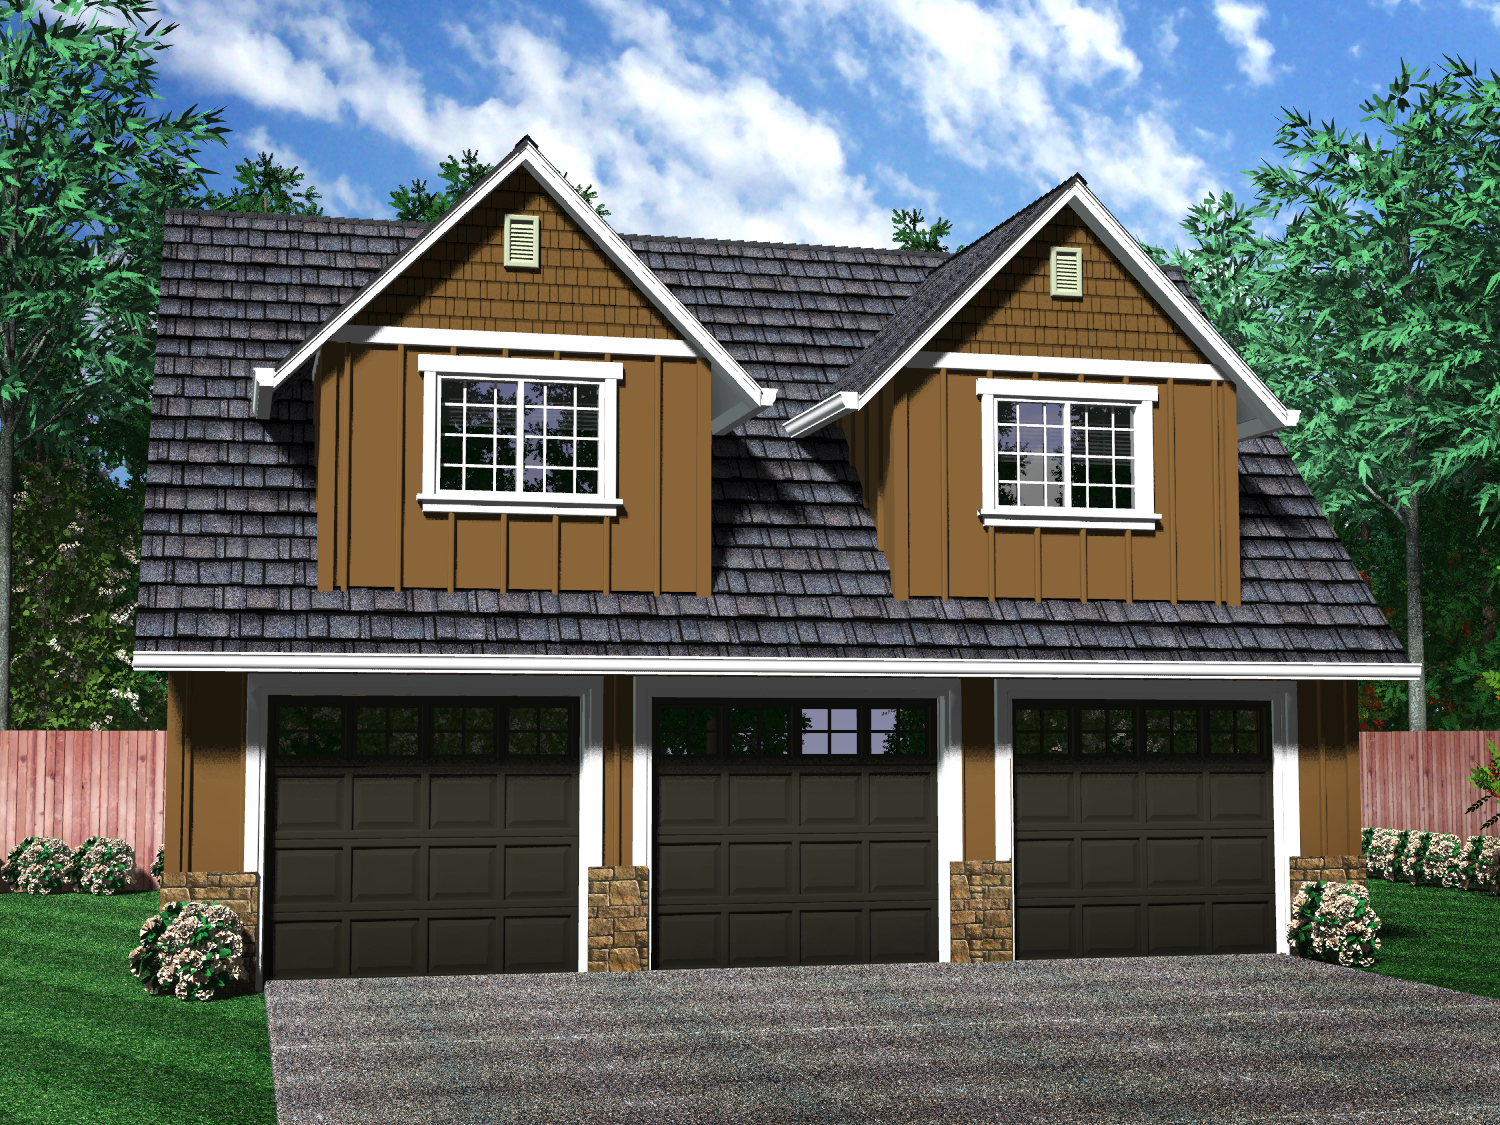 Detached garages for Garage plans with apartment on top